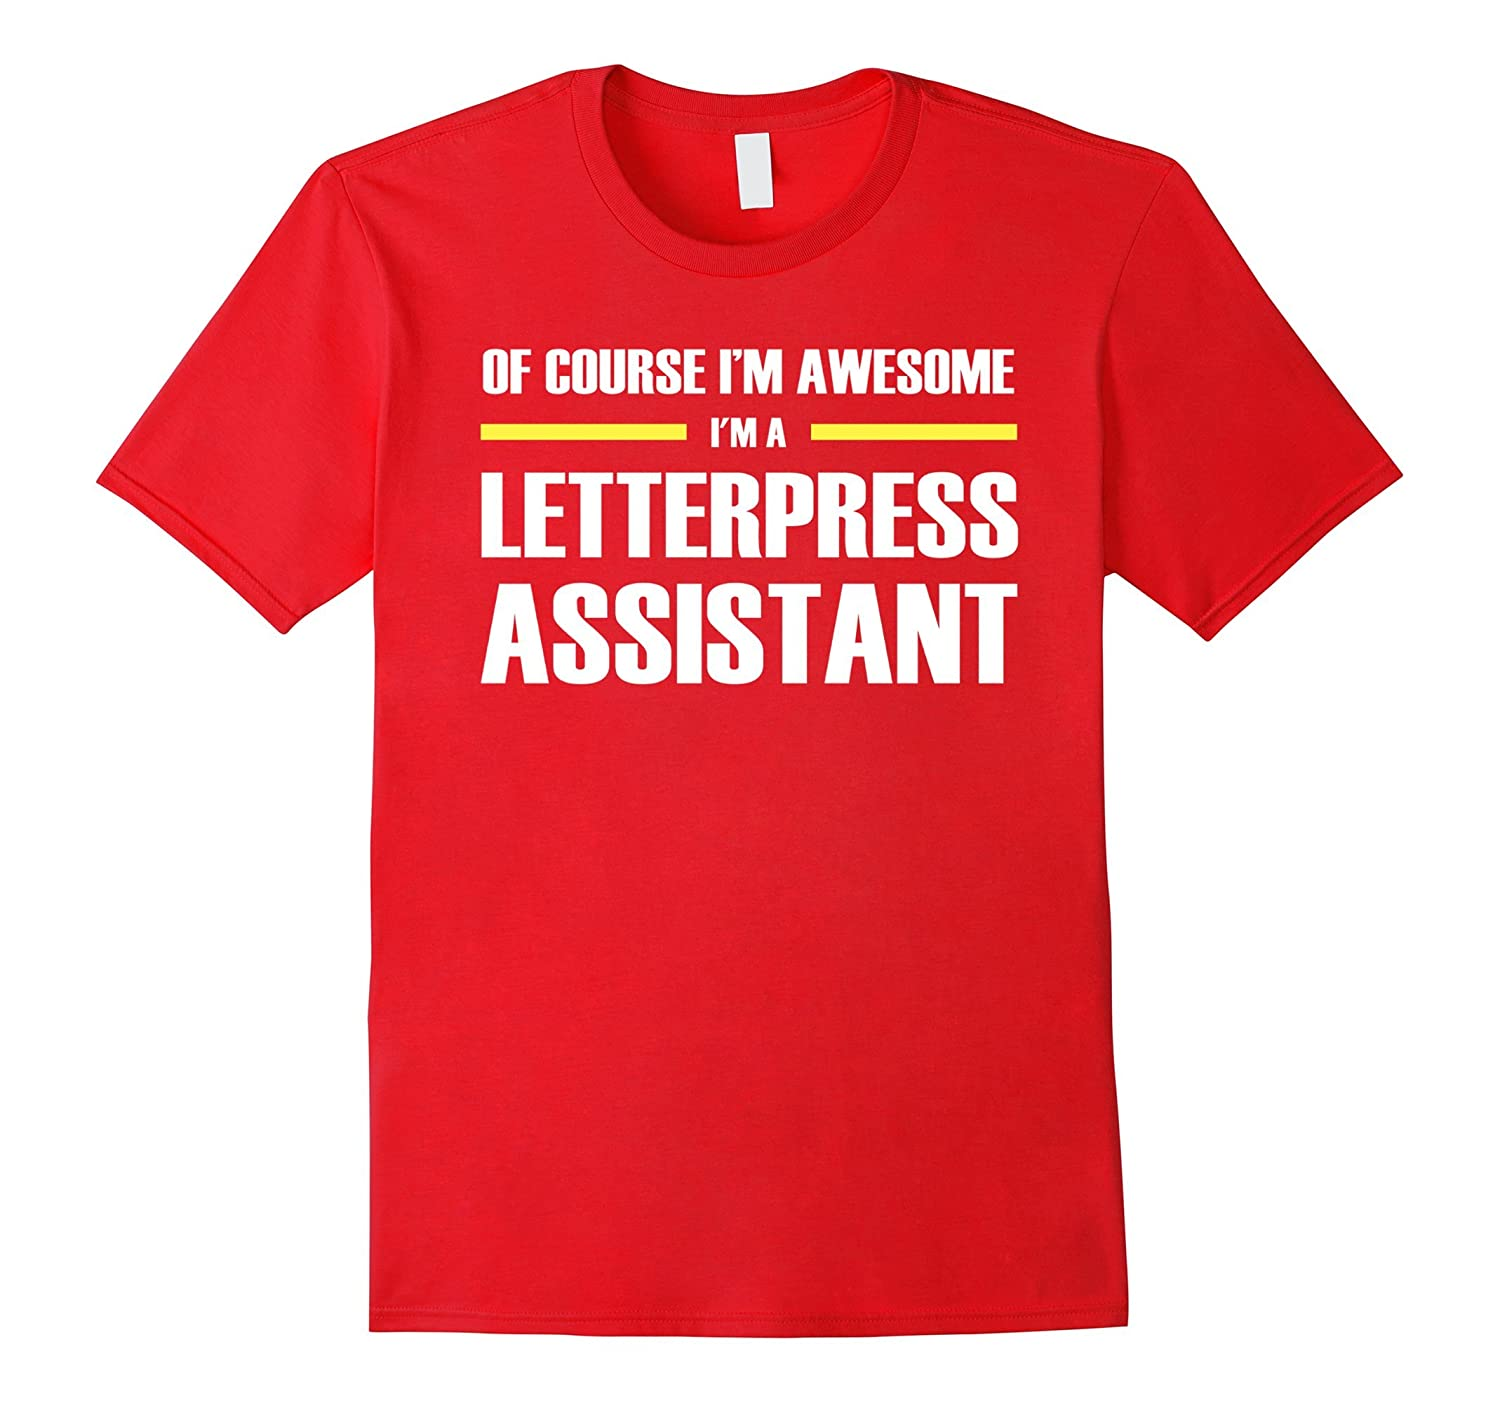 Letterpress Assistant Shirts Im Awesome Relaxed Fit T-Shirt-PL